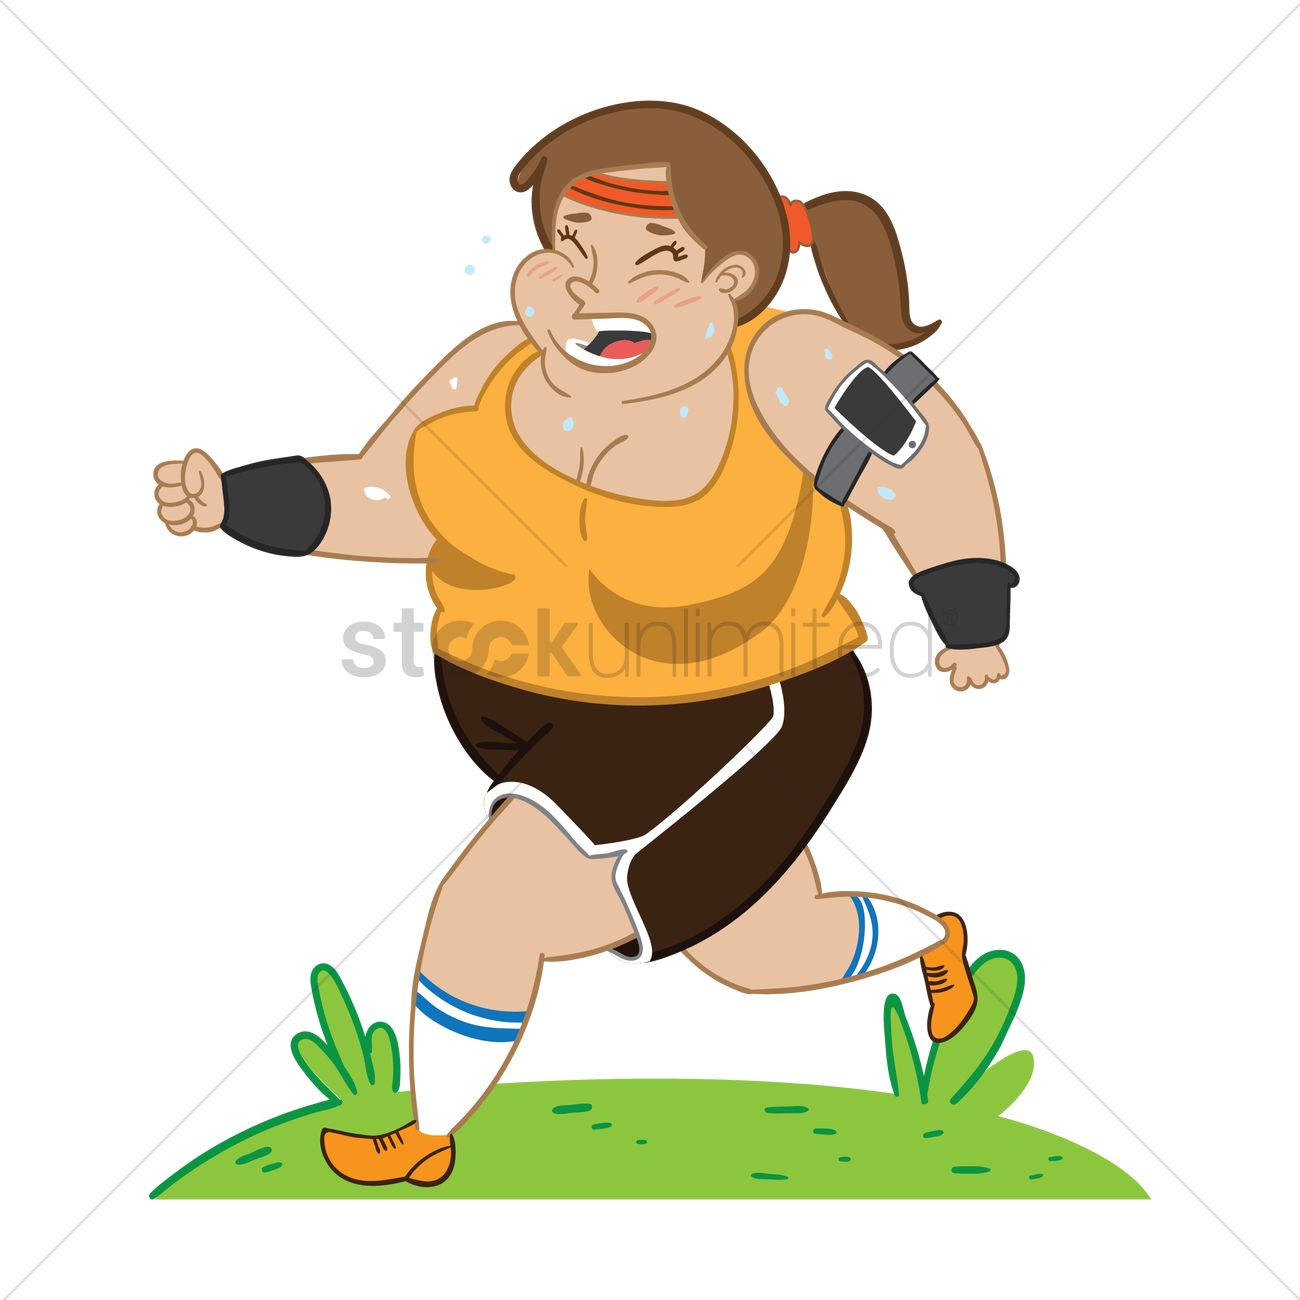 Unique Clipart Of Young Sporty Woman Jogging Or Running Isolated On White K7003982 - Search Clip Art ...